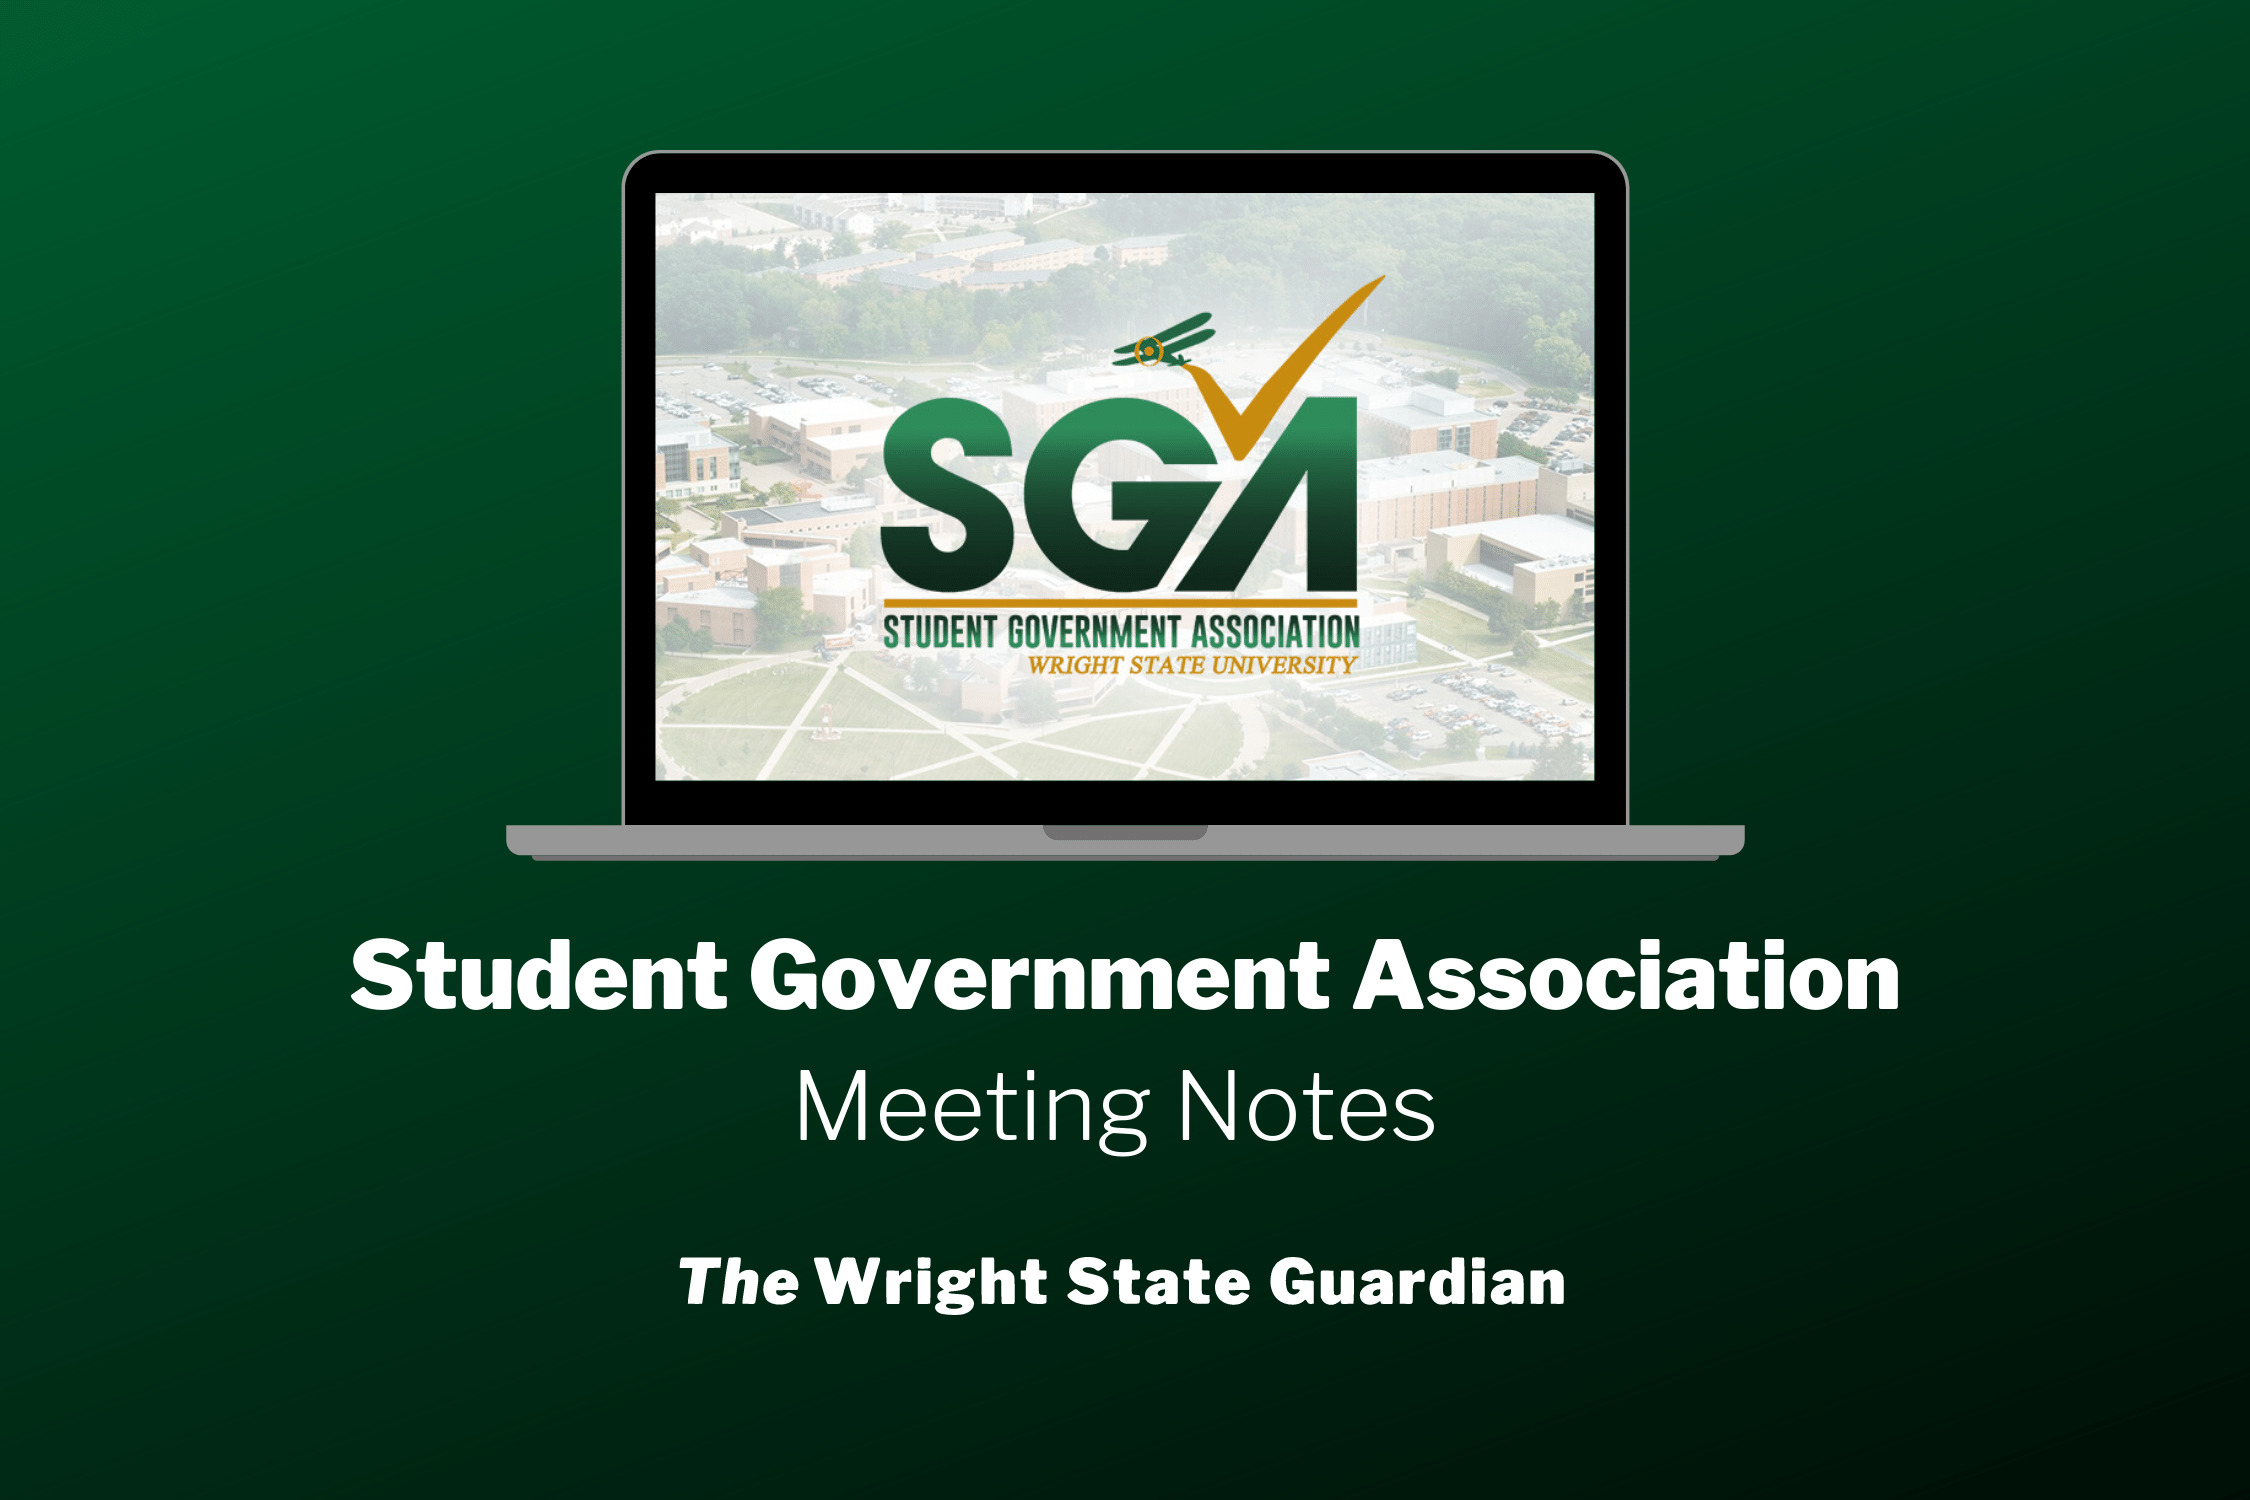 Student Government Association Meeting Notes